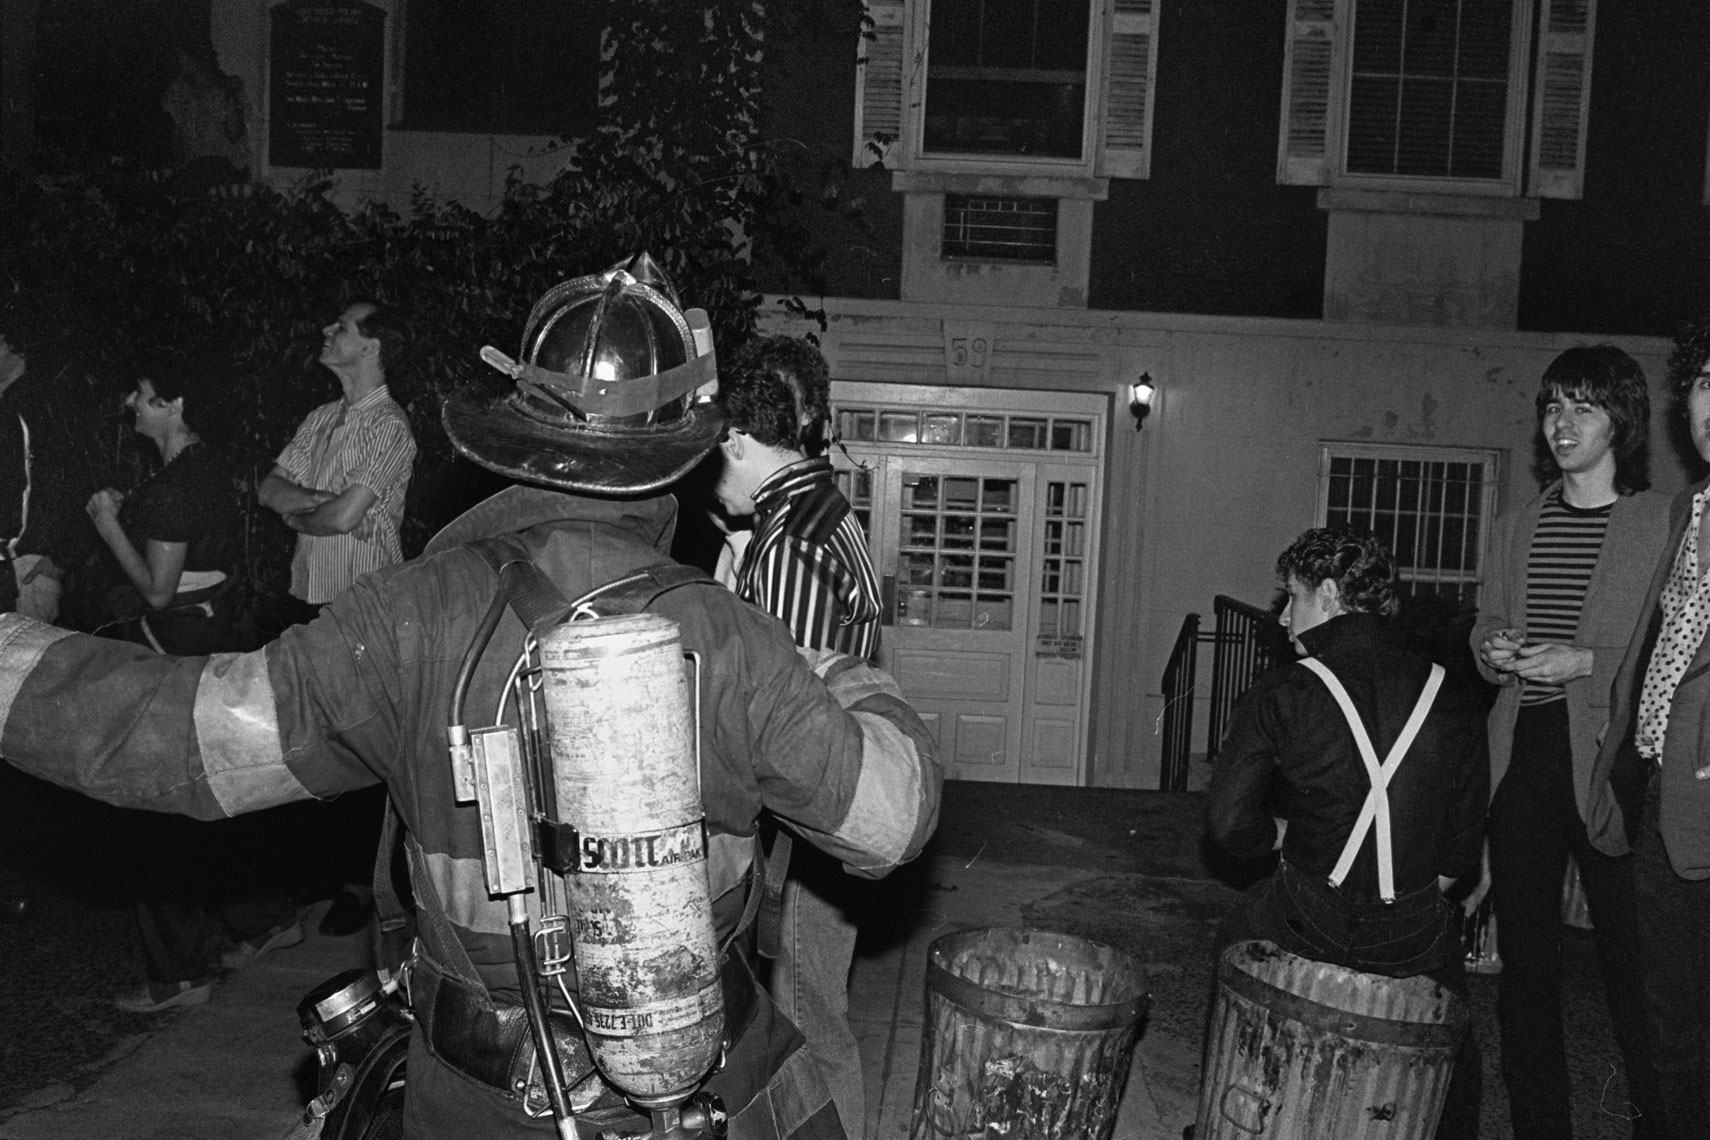 25_Club57_Elvis-Memorial-Party-Fire-Dept-arrives-after-fire-in-Club_0880.jpg